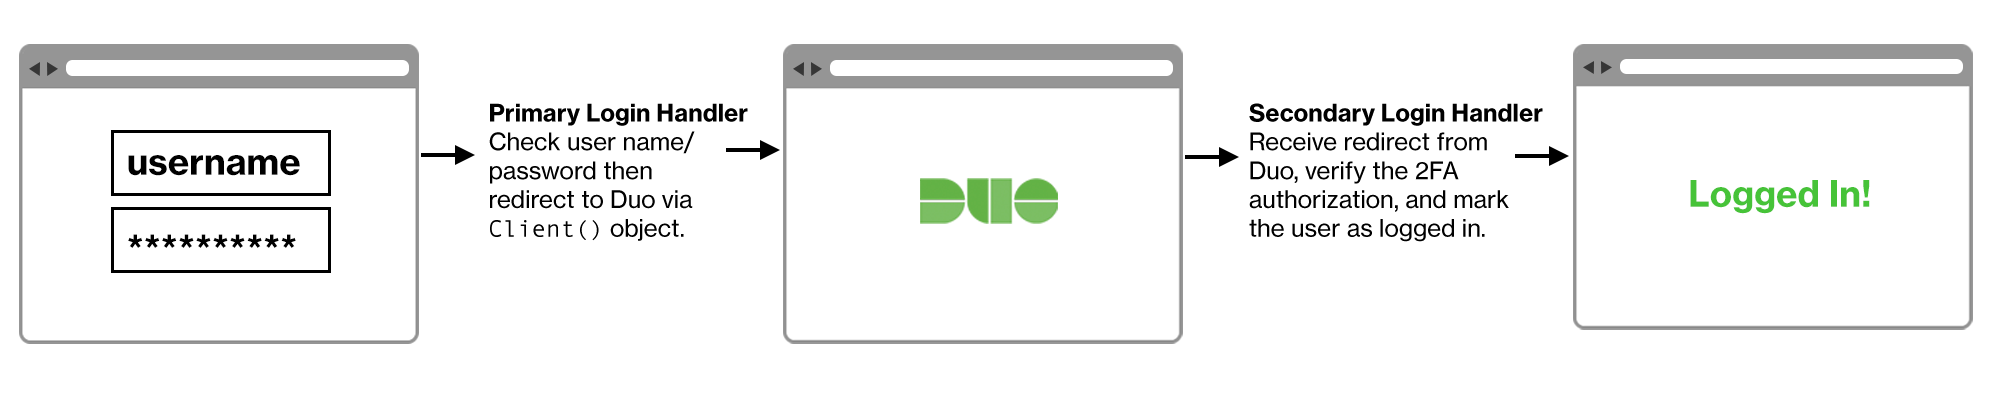 Duo Web Flow After